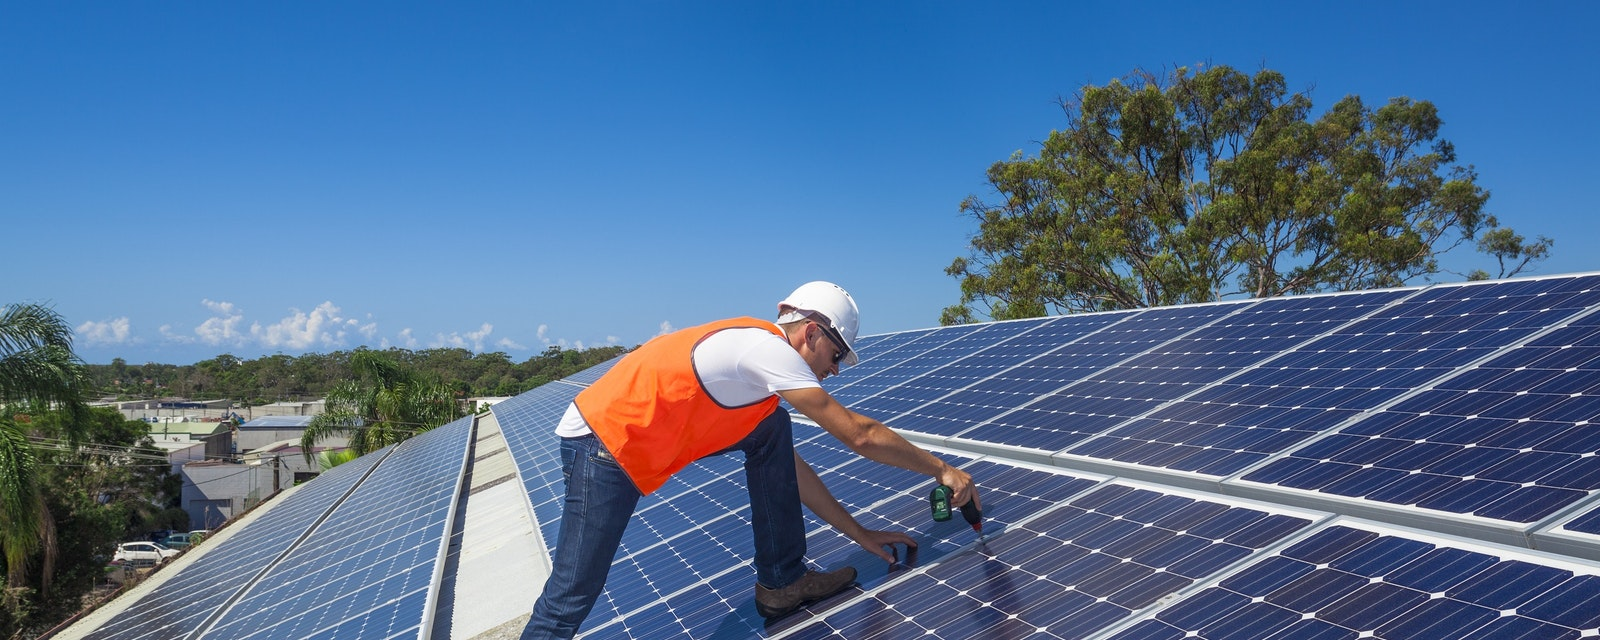 Young,Technician,Installing,Solar,Panels,On,Factory,Roof